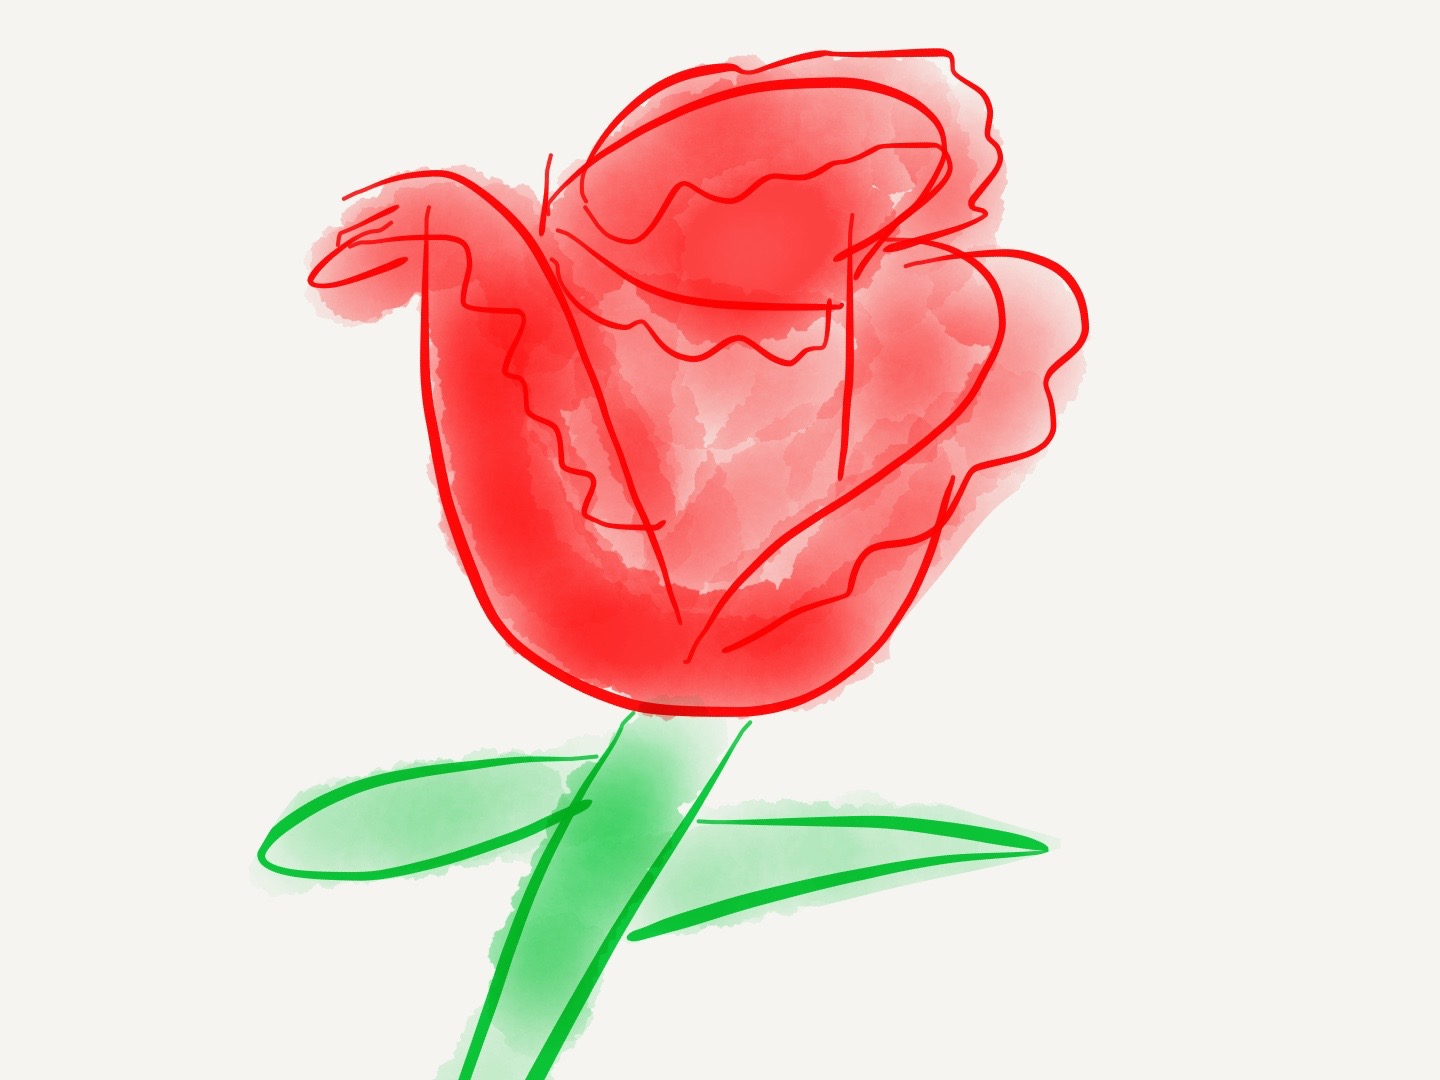 Salient Names of a rose